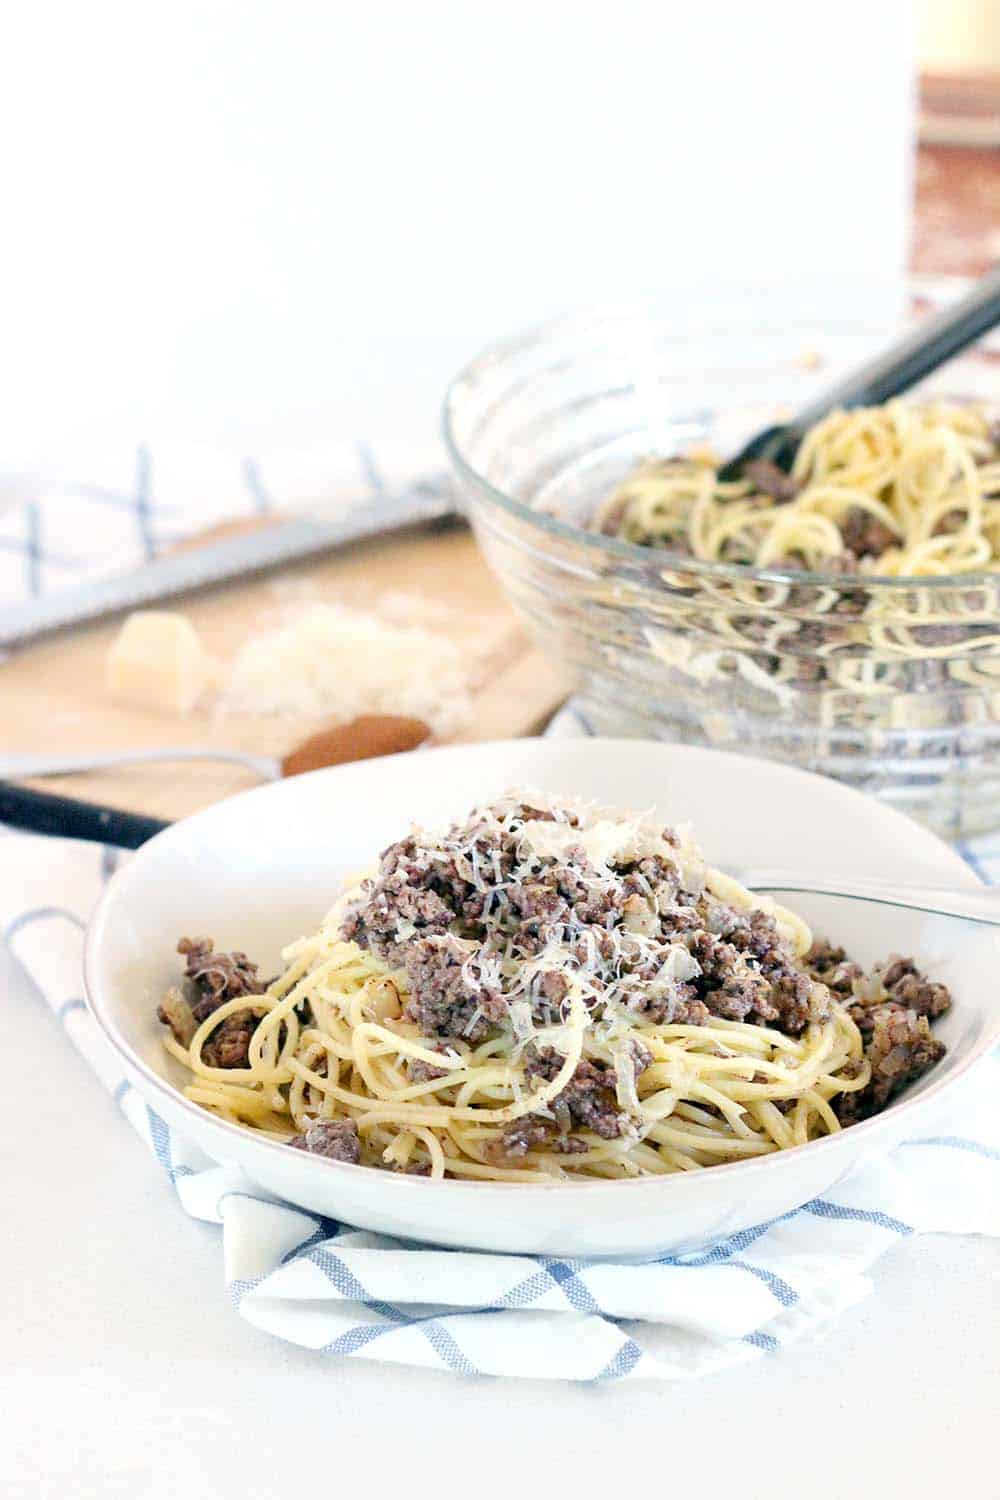 This recipe for Greek Spaghetti has browned beef spiced with cinnamon, is drizzled with earthy browned butter, and is sprinkled with Romano cheese. It's the ULTIMATE Greek comfort food! | www.bowlofdelicious.com